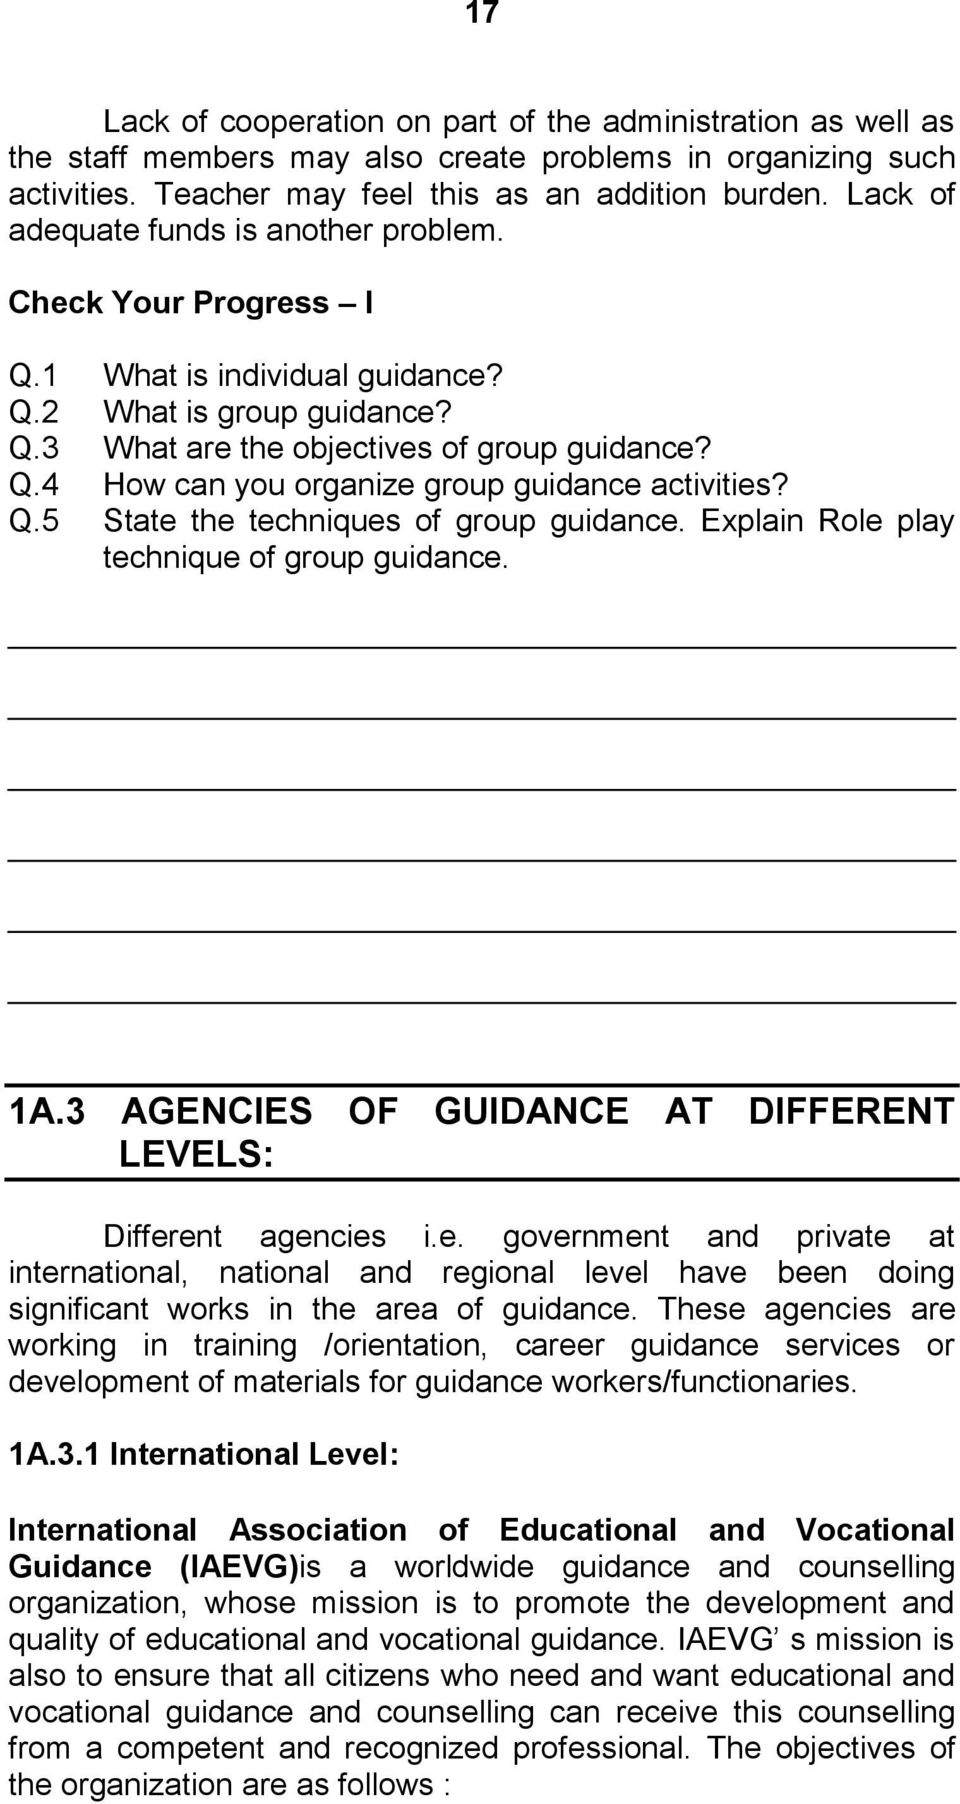 Q.5 State the techniques of group guidance. Explain Role play technique of group guidance. 1A.3 AGENCIES OF GUIDANCE AT DIFFERENT LEVELS: Different agencies i.e. government and private at international, national and regional level have been doing significant works in the area of guidance.